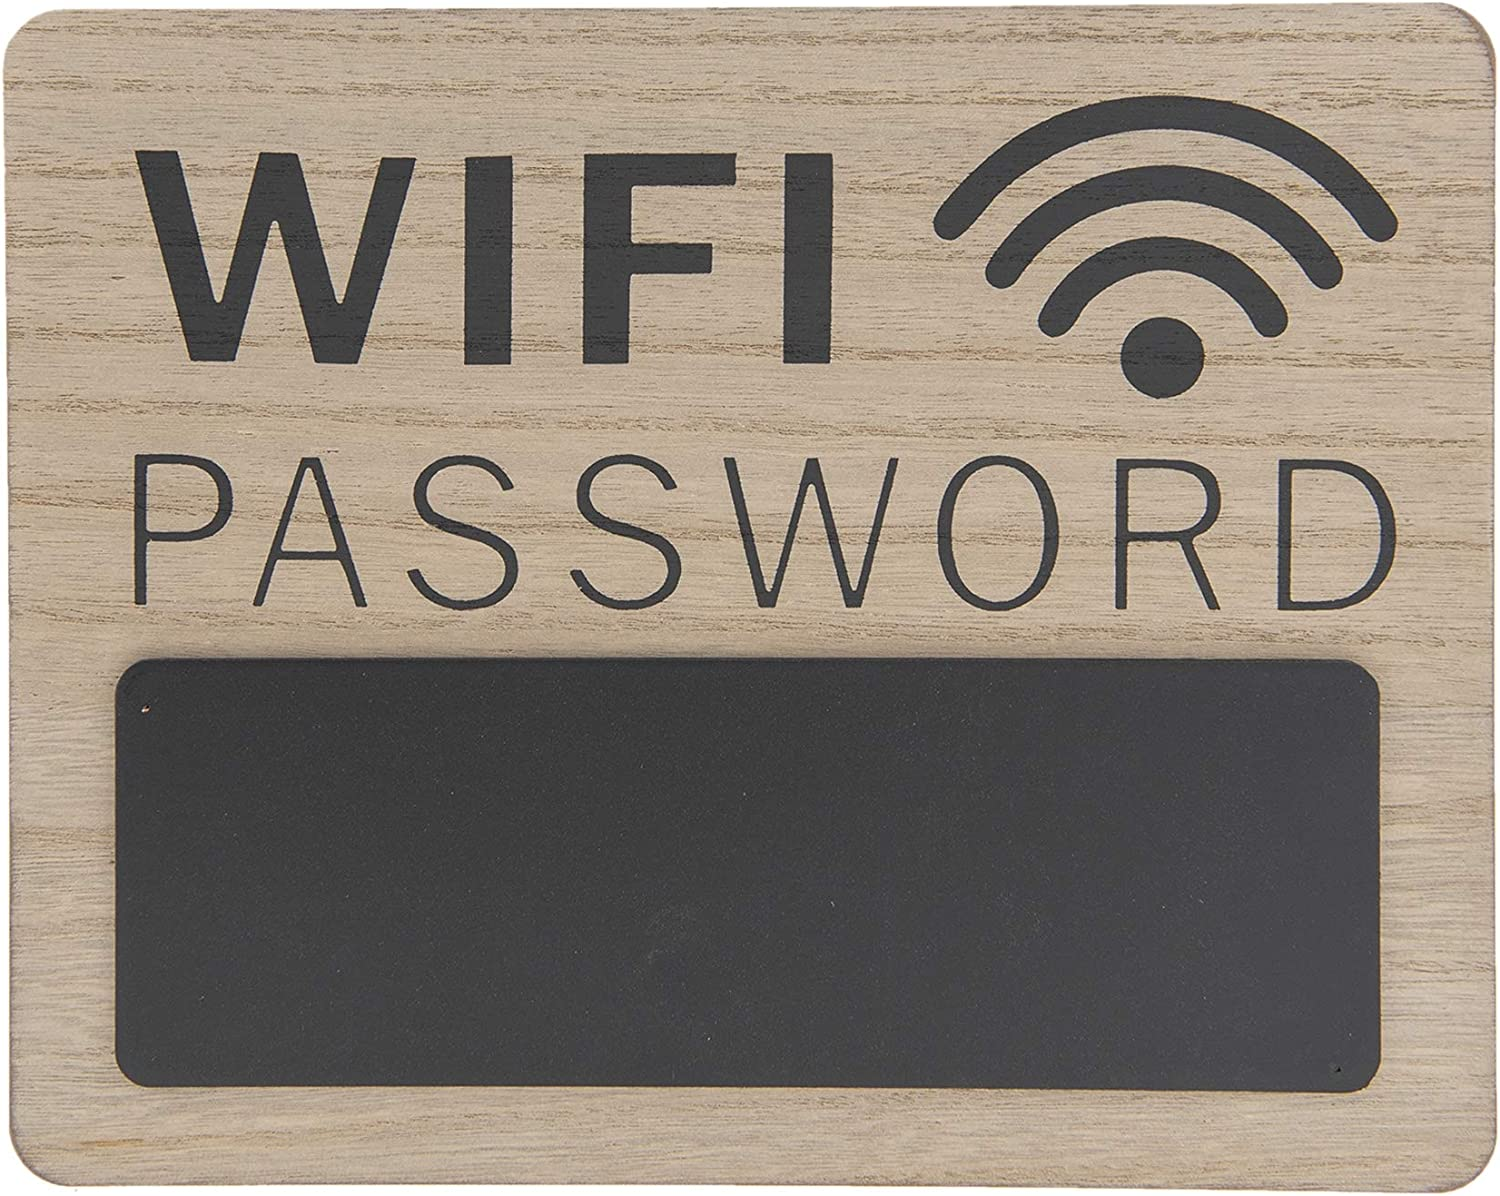 CE - Cartel Vintage Retro, Modelo WiFi Password, Material Madera ...